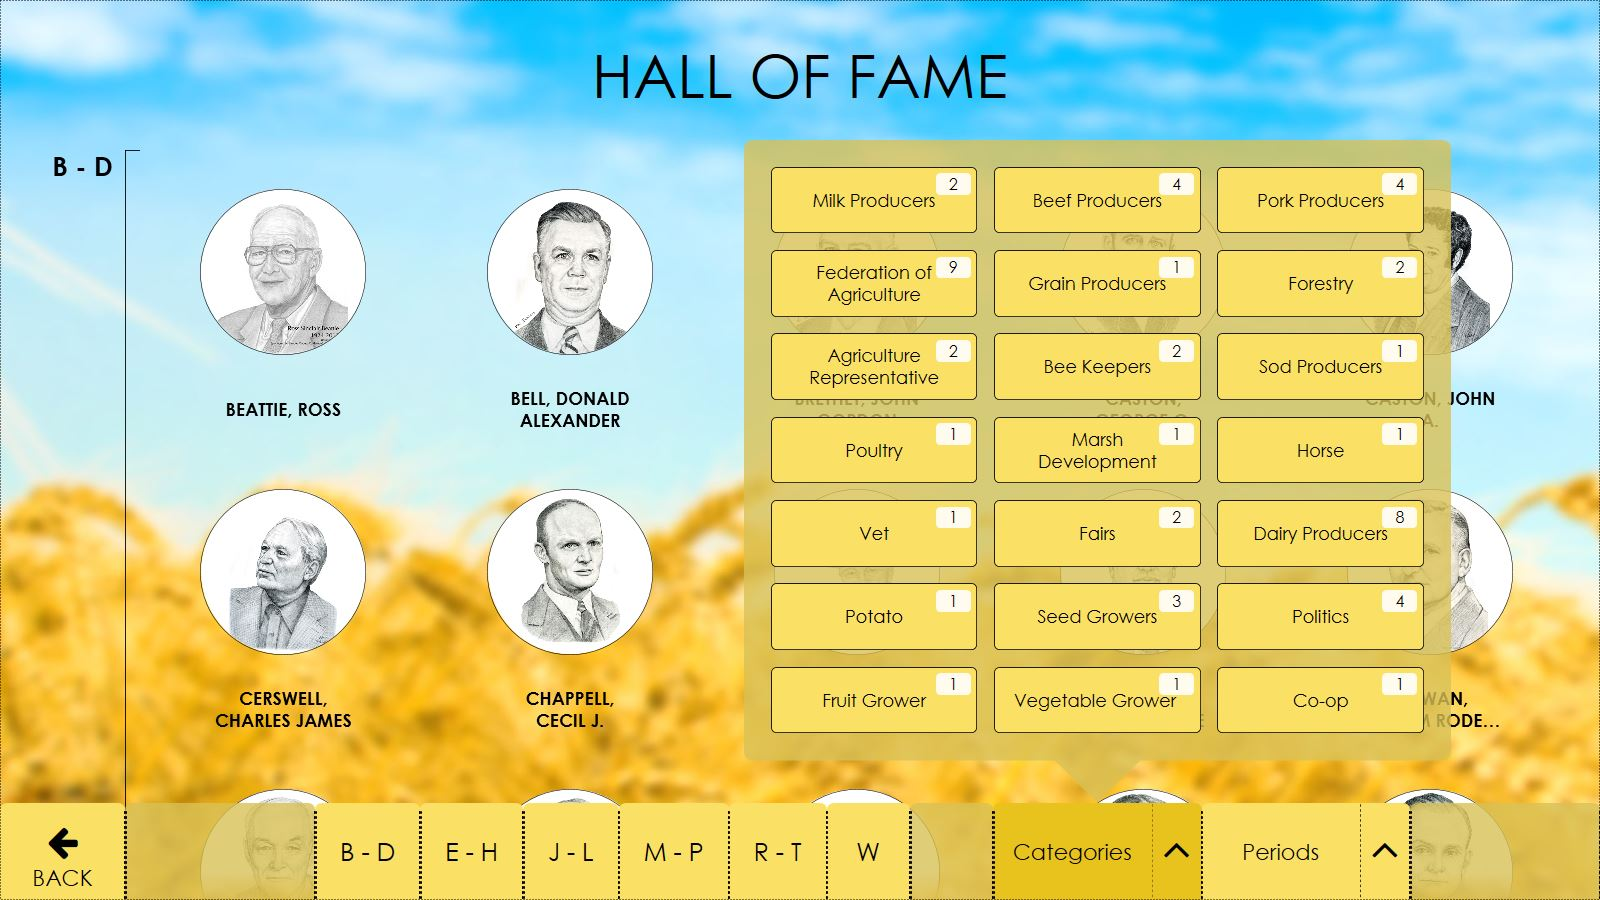 Interactive Hall of fame application